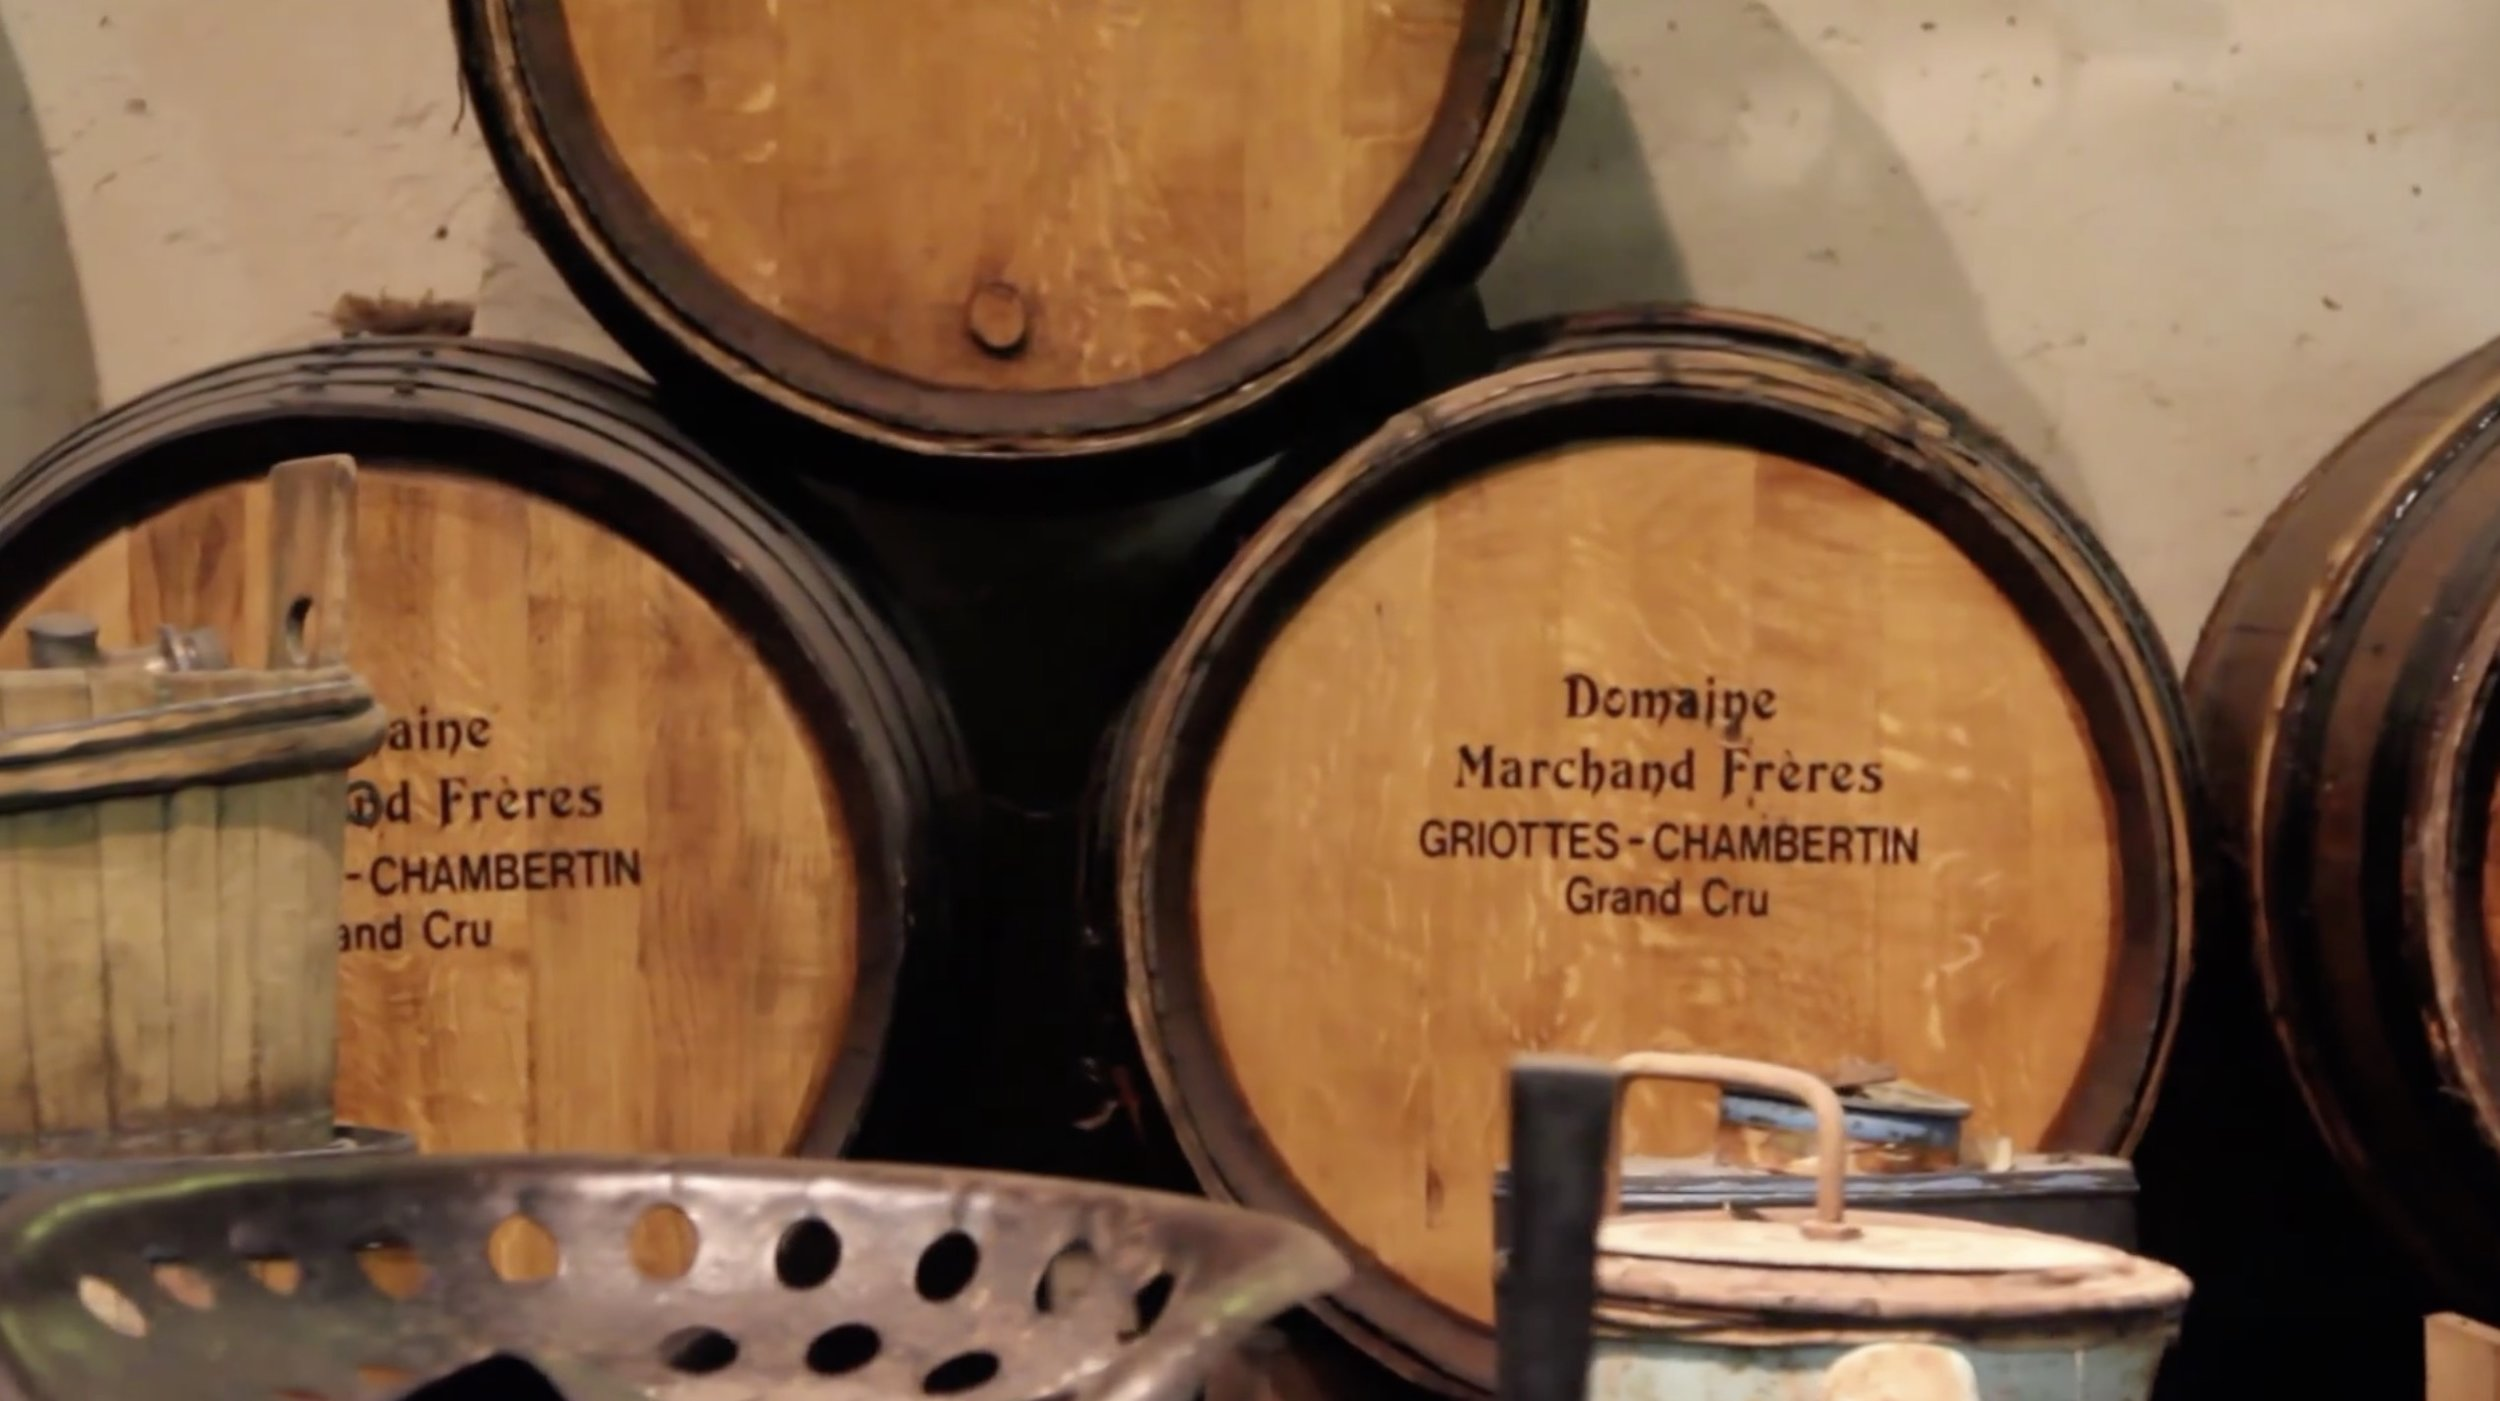 France_Jean-Philippe Marchand_Winery Image.jpg